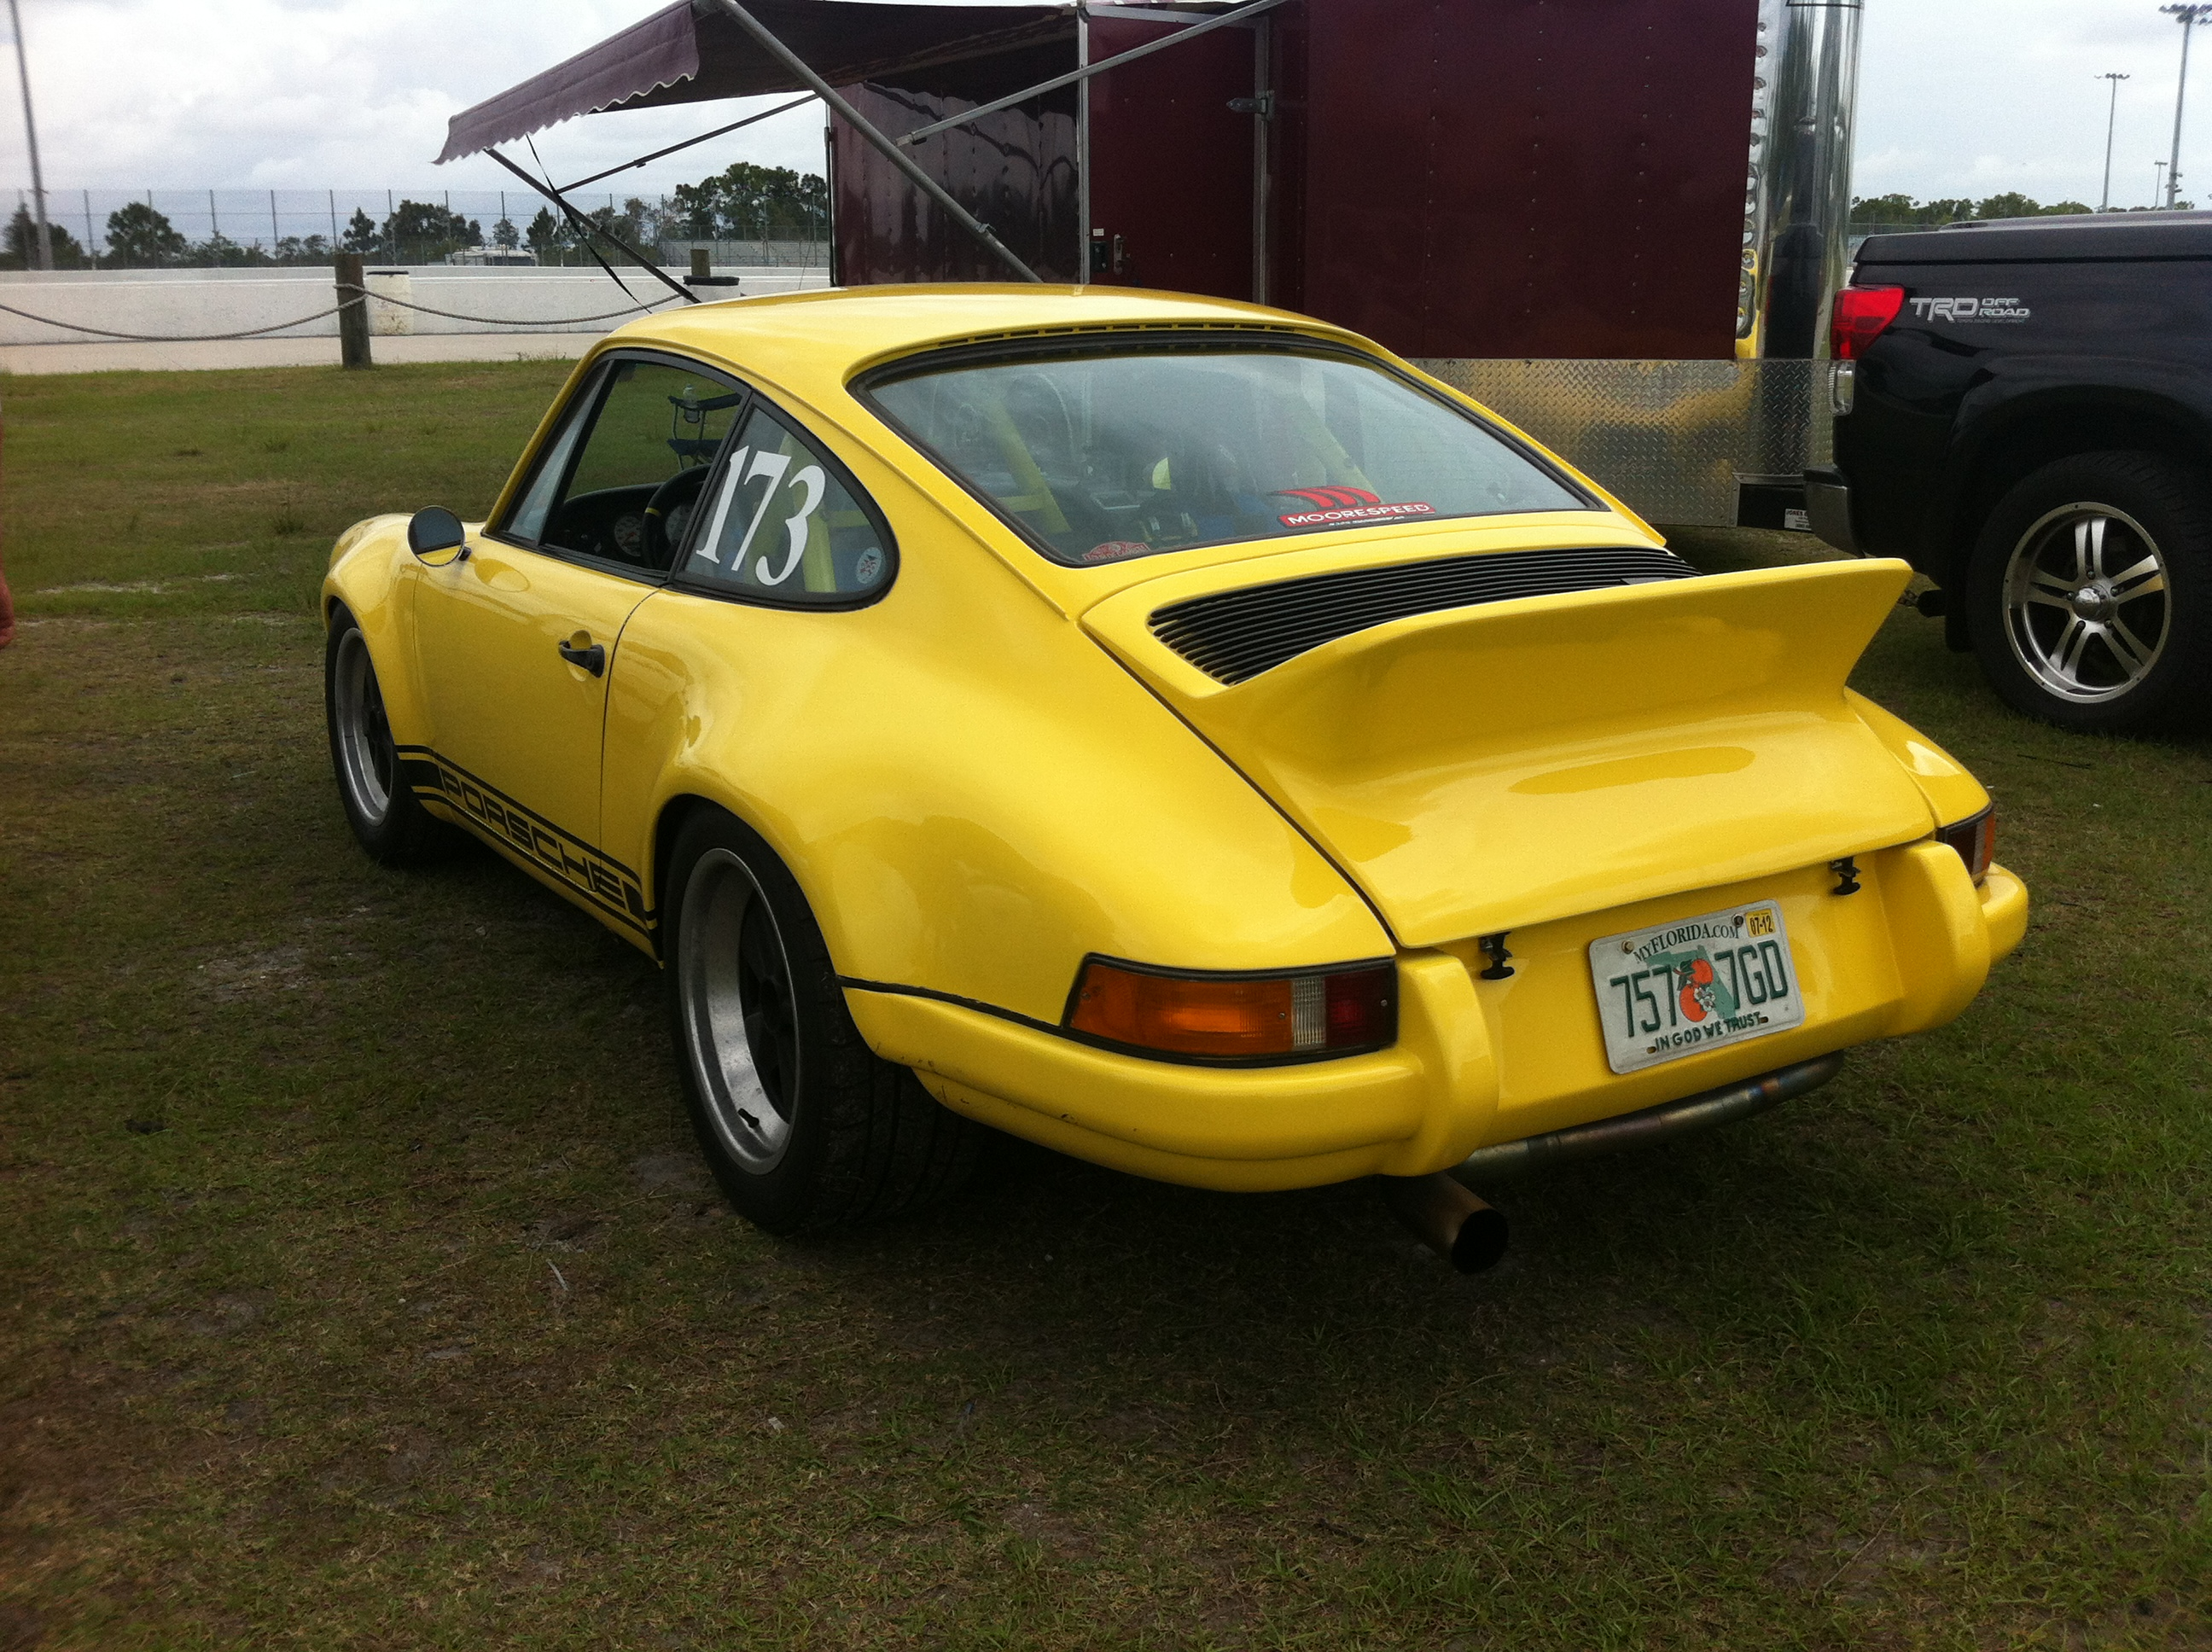 1973 porsche 911 rsr clone spotted at pbir christofer. Black Bedroom Furniture Sets. Home Design Ideas